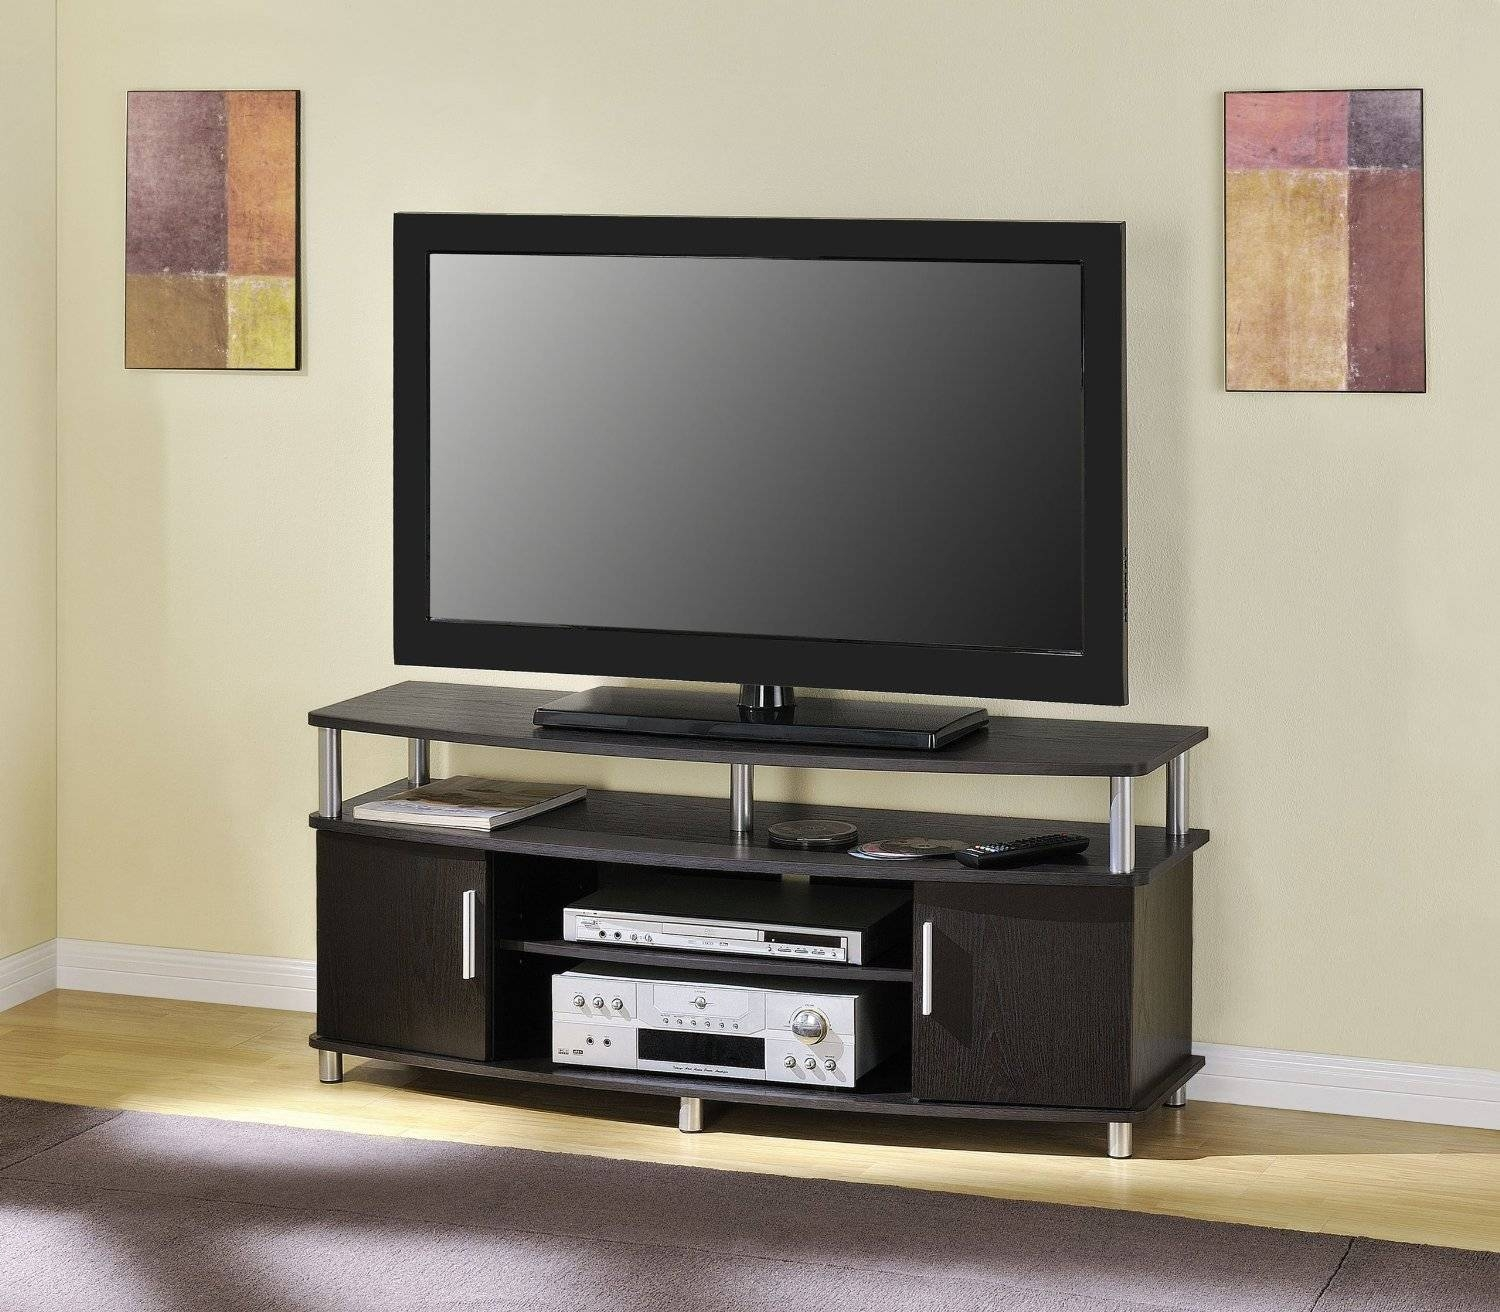 Tv Stands: 7 Best Selling Flat Screen Tv Stands 2017 Within Tv Stands For 43 Inch Tv (View 5 of 15)